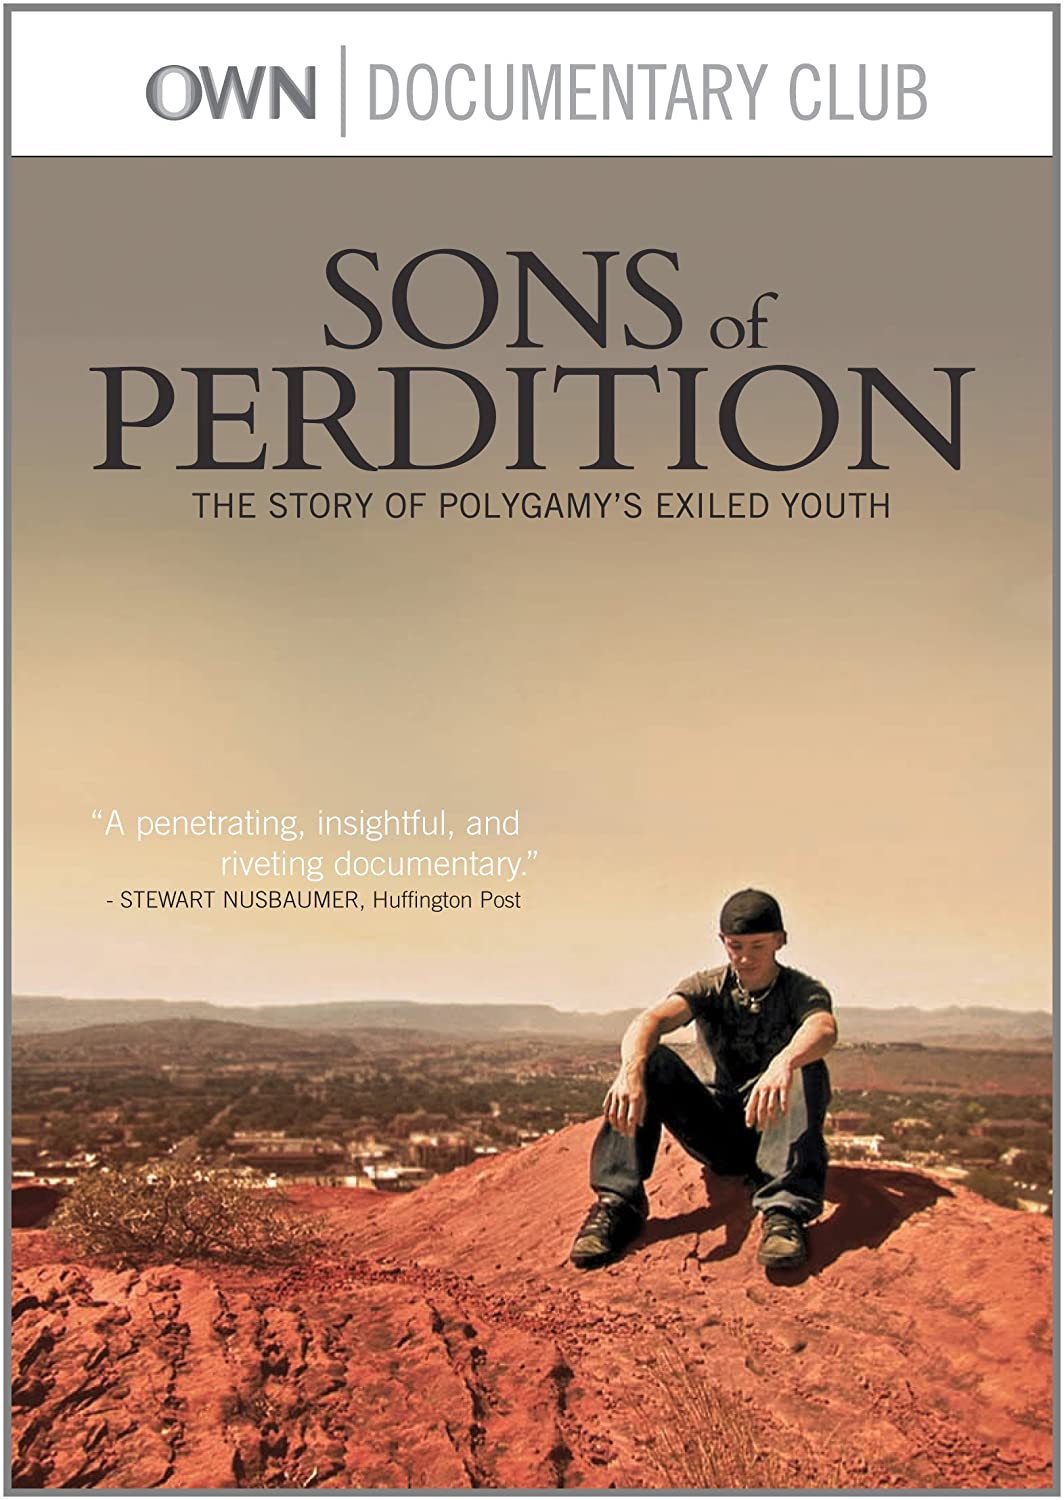 Amazon com: Sons of Perdition: Artists Not Provided, Tyler